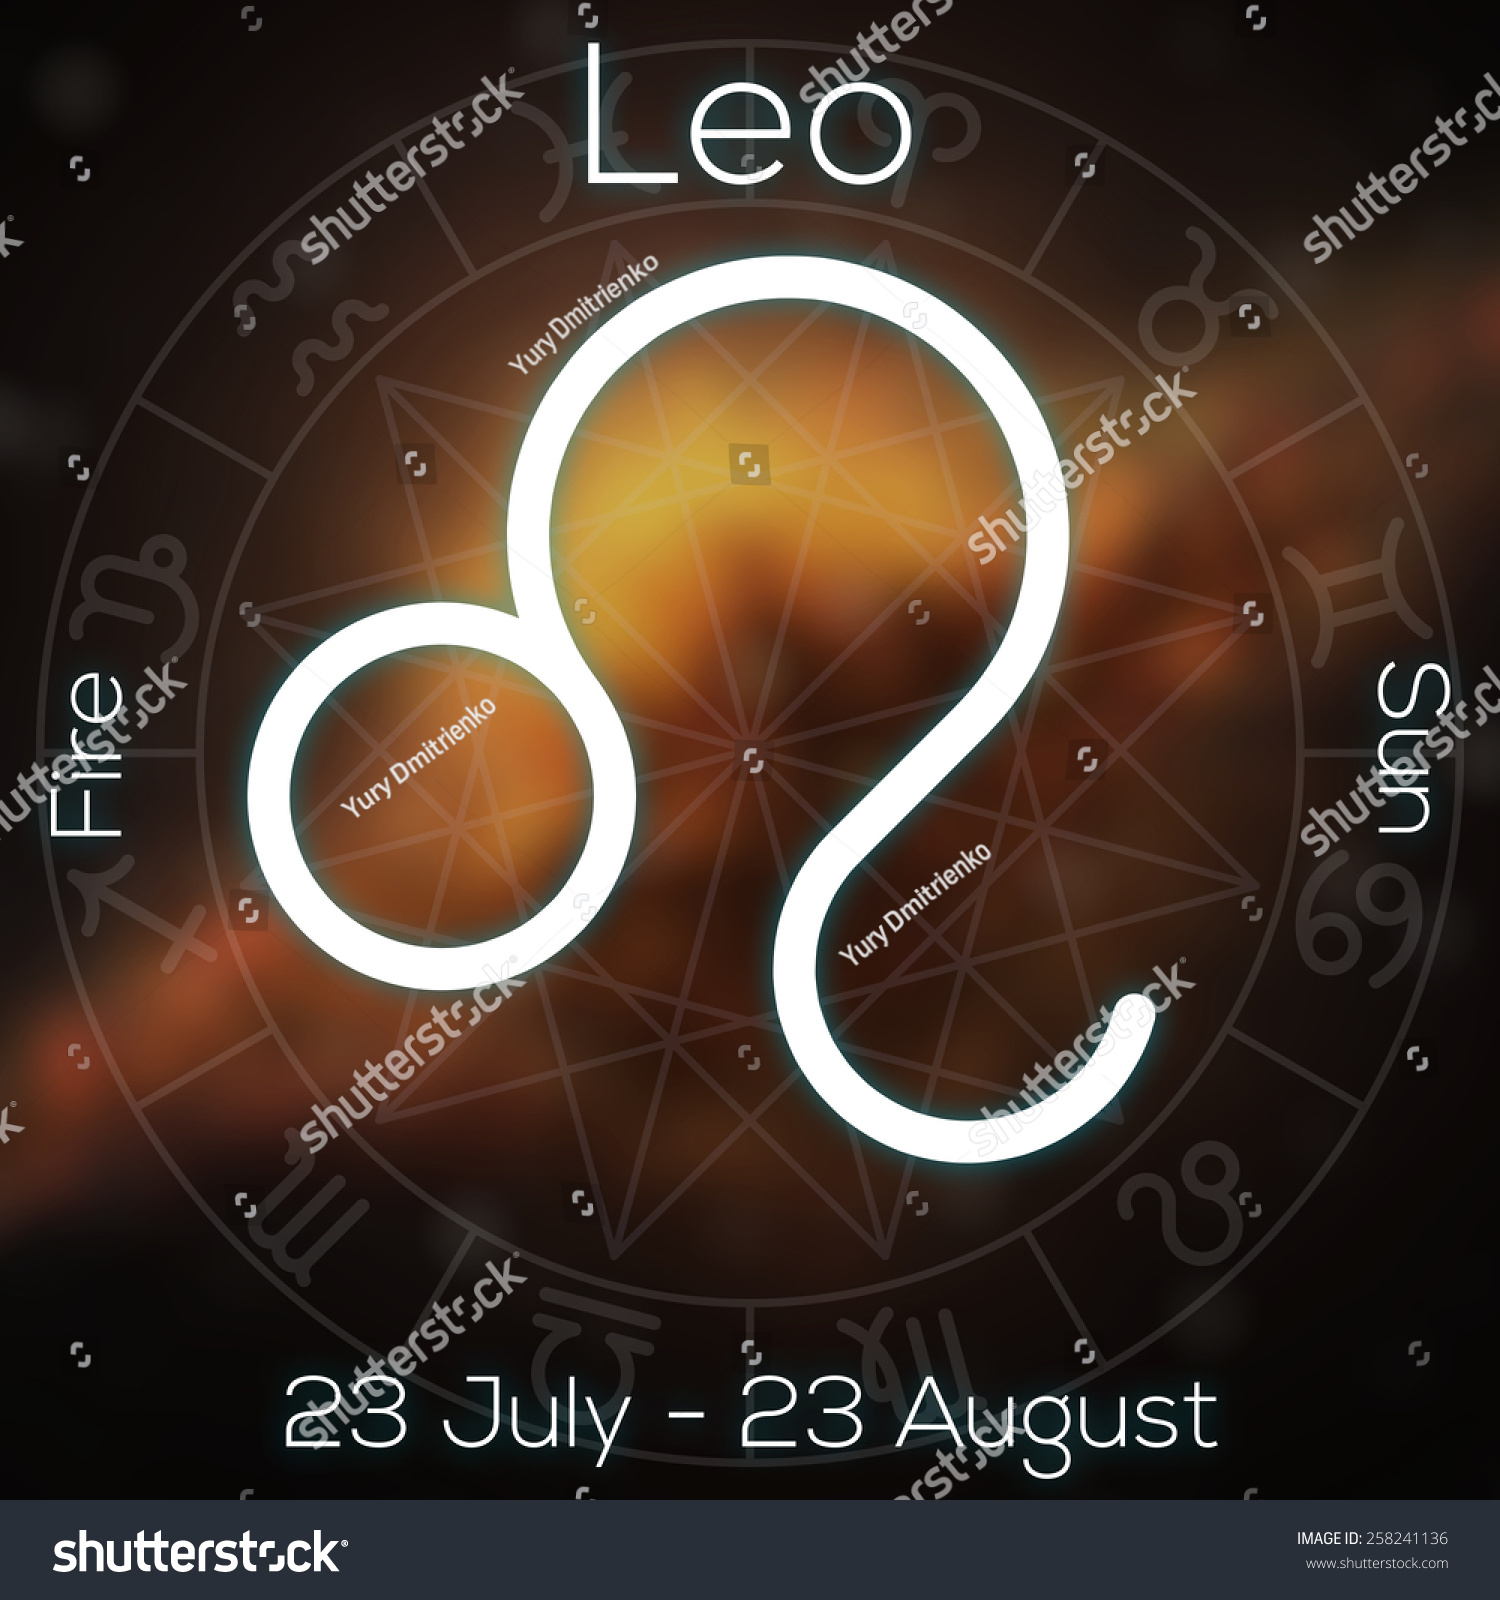 Leo astrology dates in Melbourne